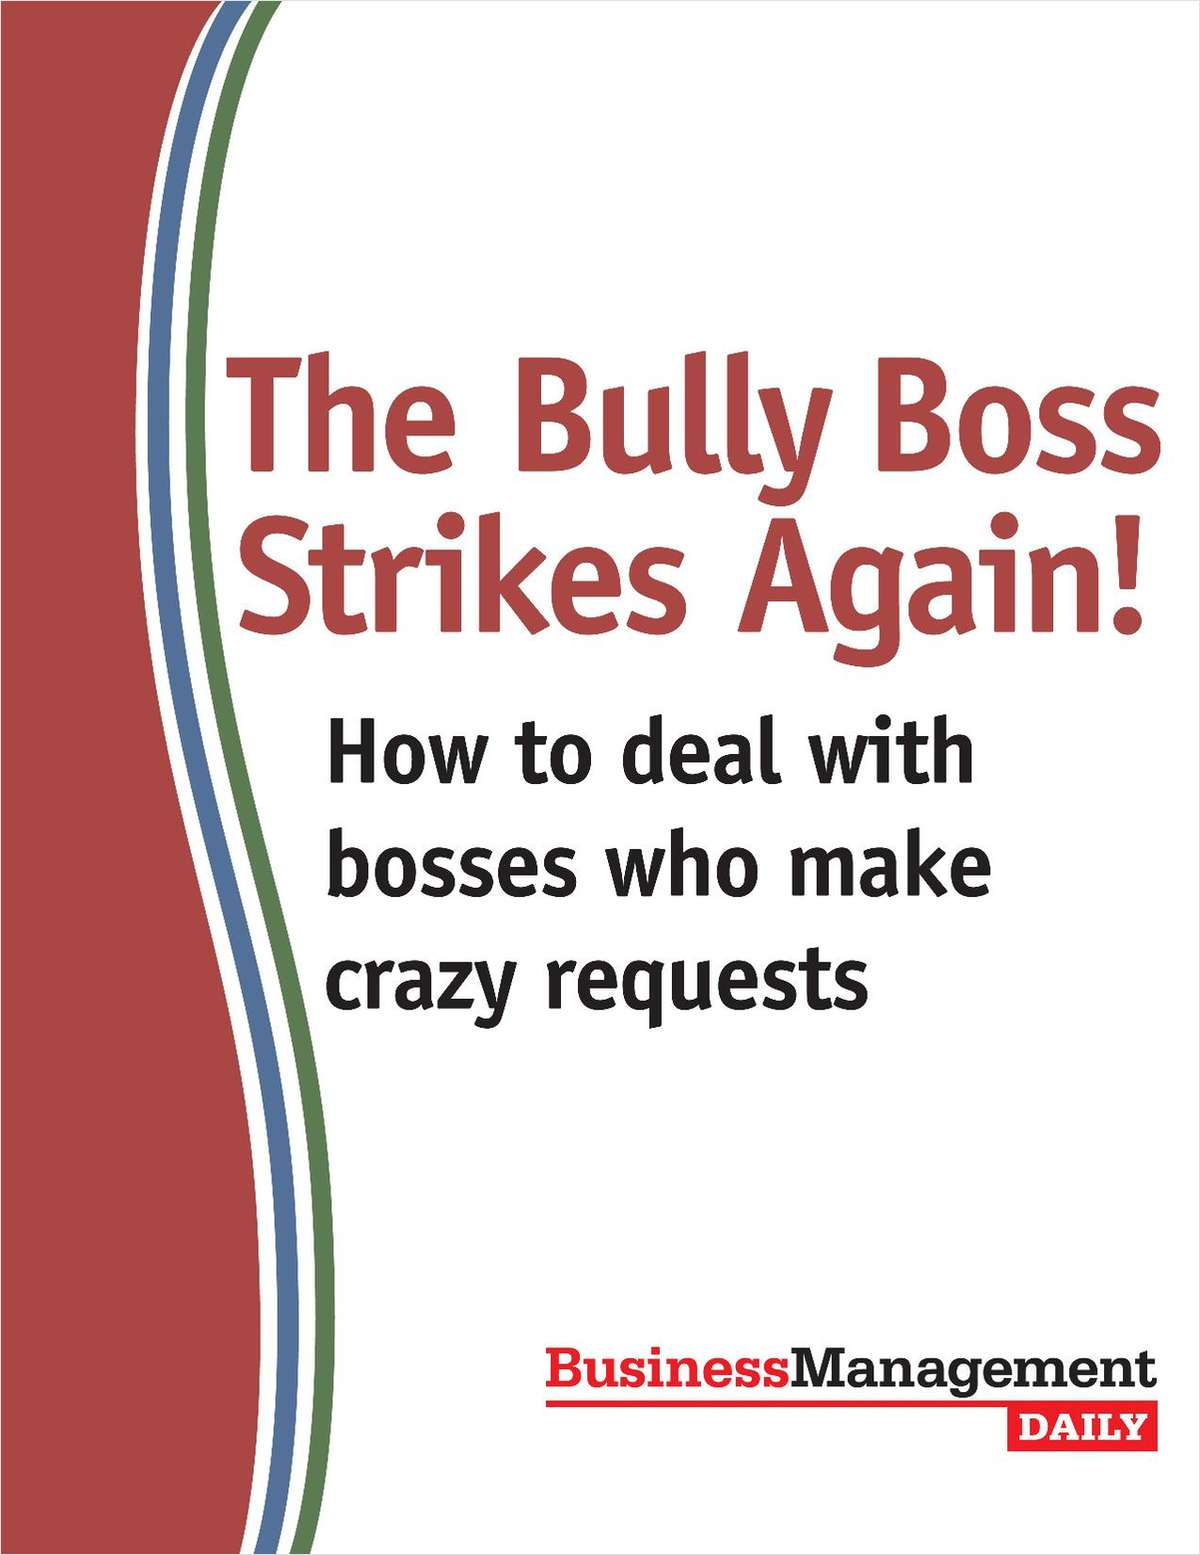 The Bully Boss Strikes Again!